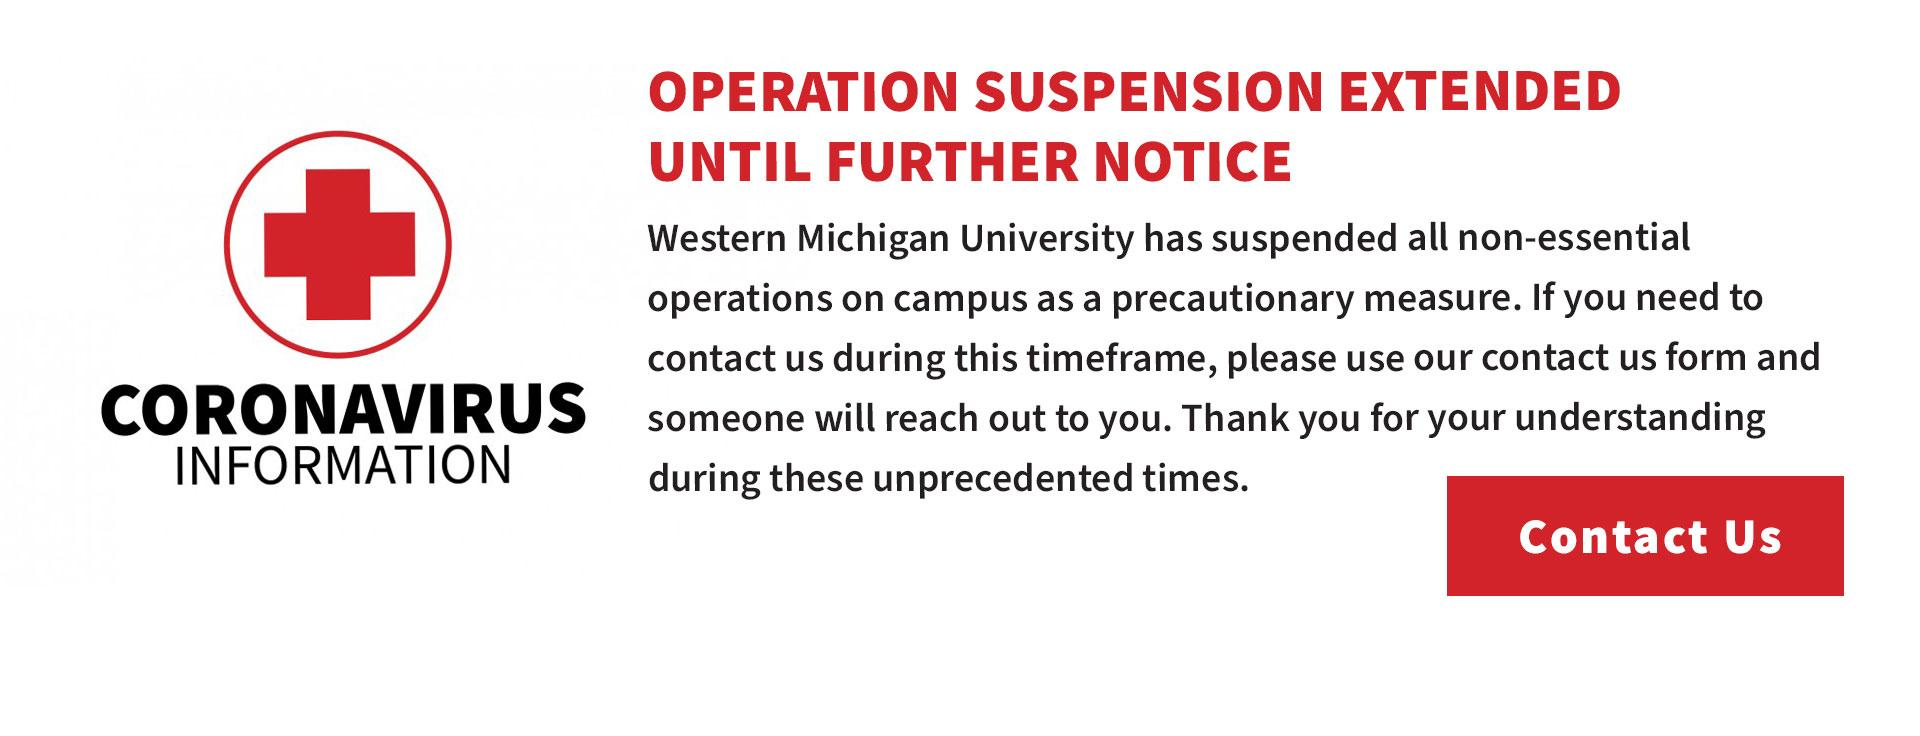 Miller Auditorium Operation Suspended Until Further Notice:If you need to contact us during this time frame please use our contact form.